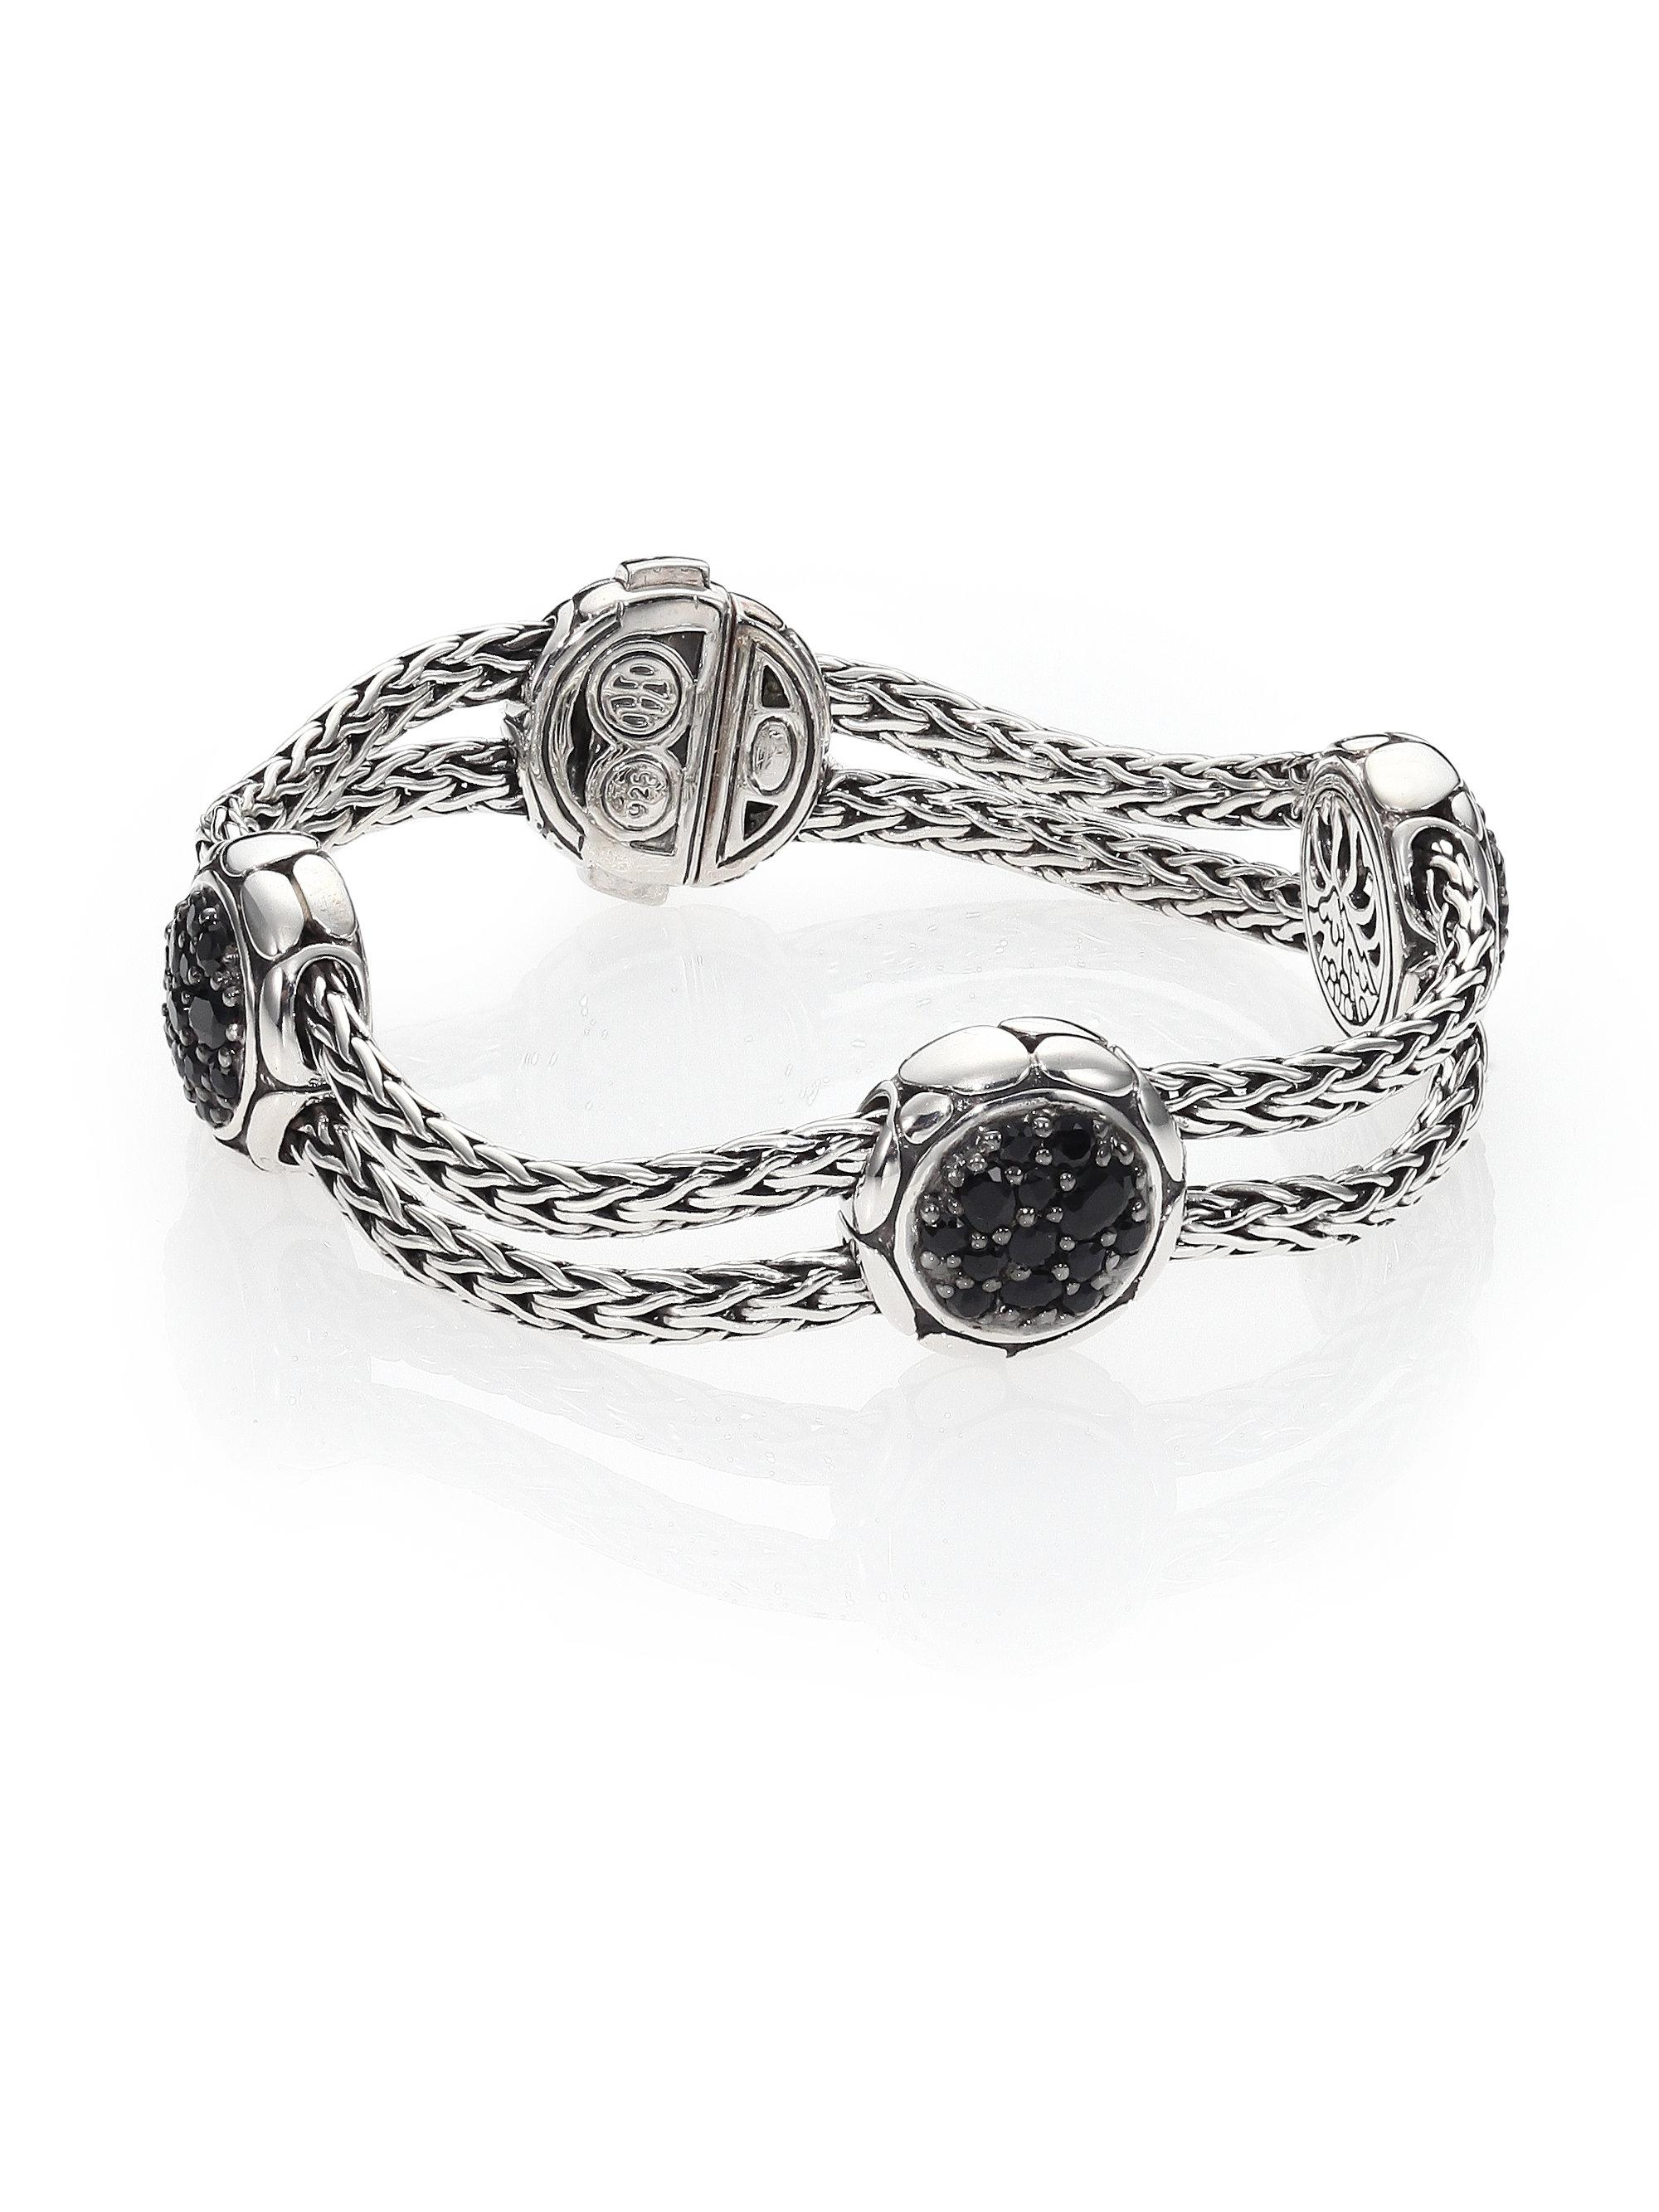 jewellers studio dixon rail bracelet image gallery products tamara pure silver